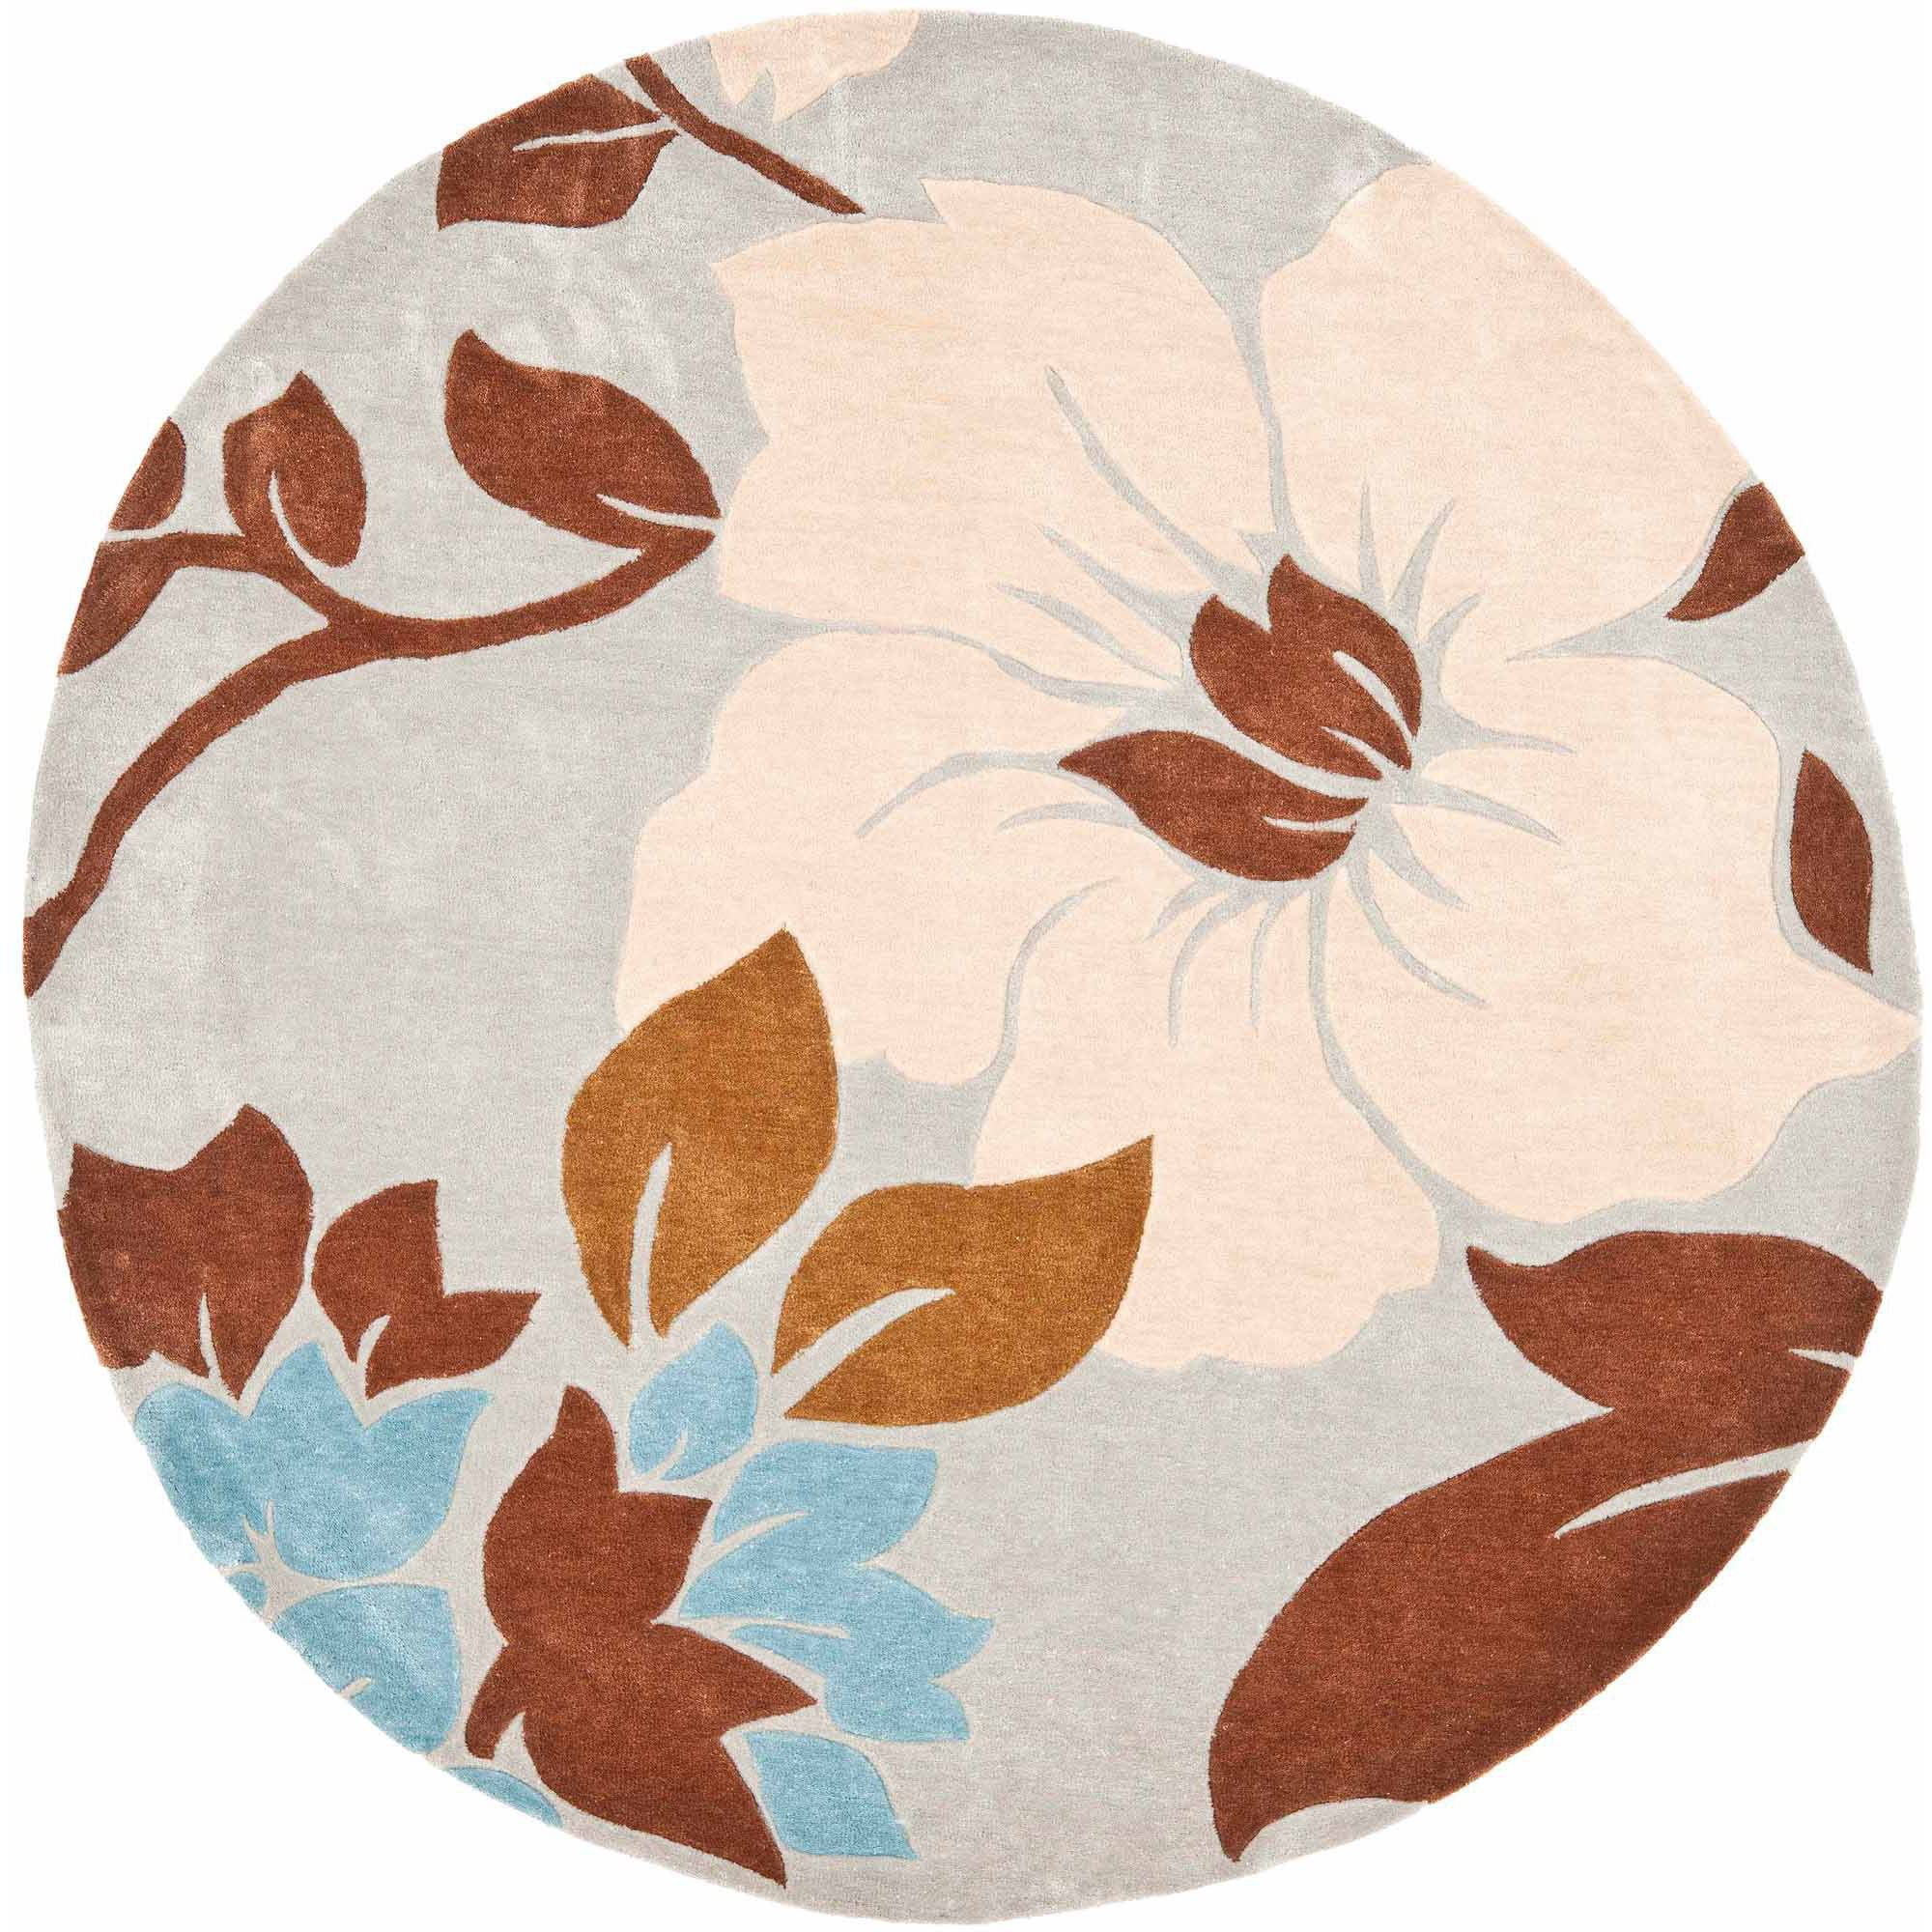 Safavieh Modern Art Metha Hand Tufted Area Rug, Ivory/Multi-Colored